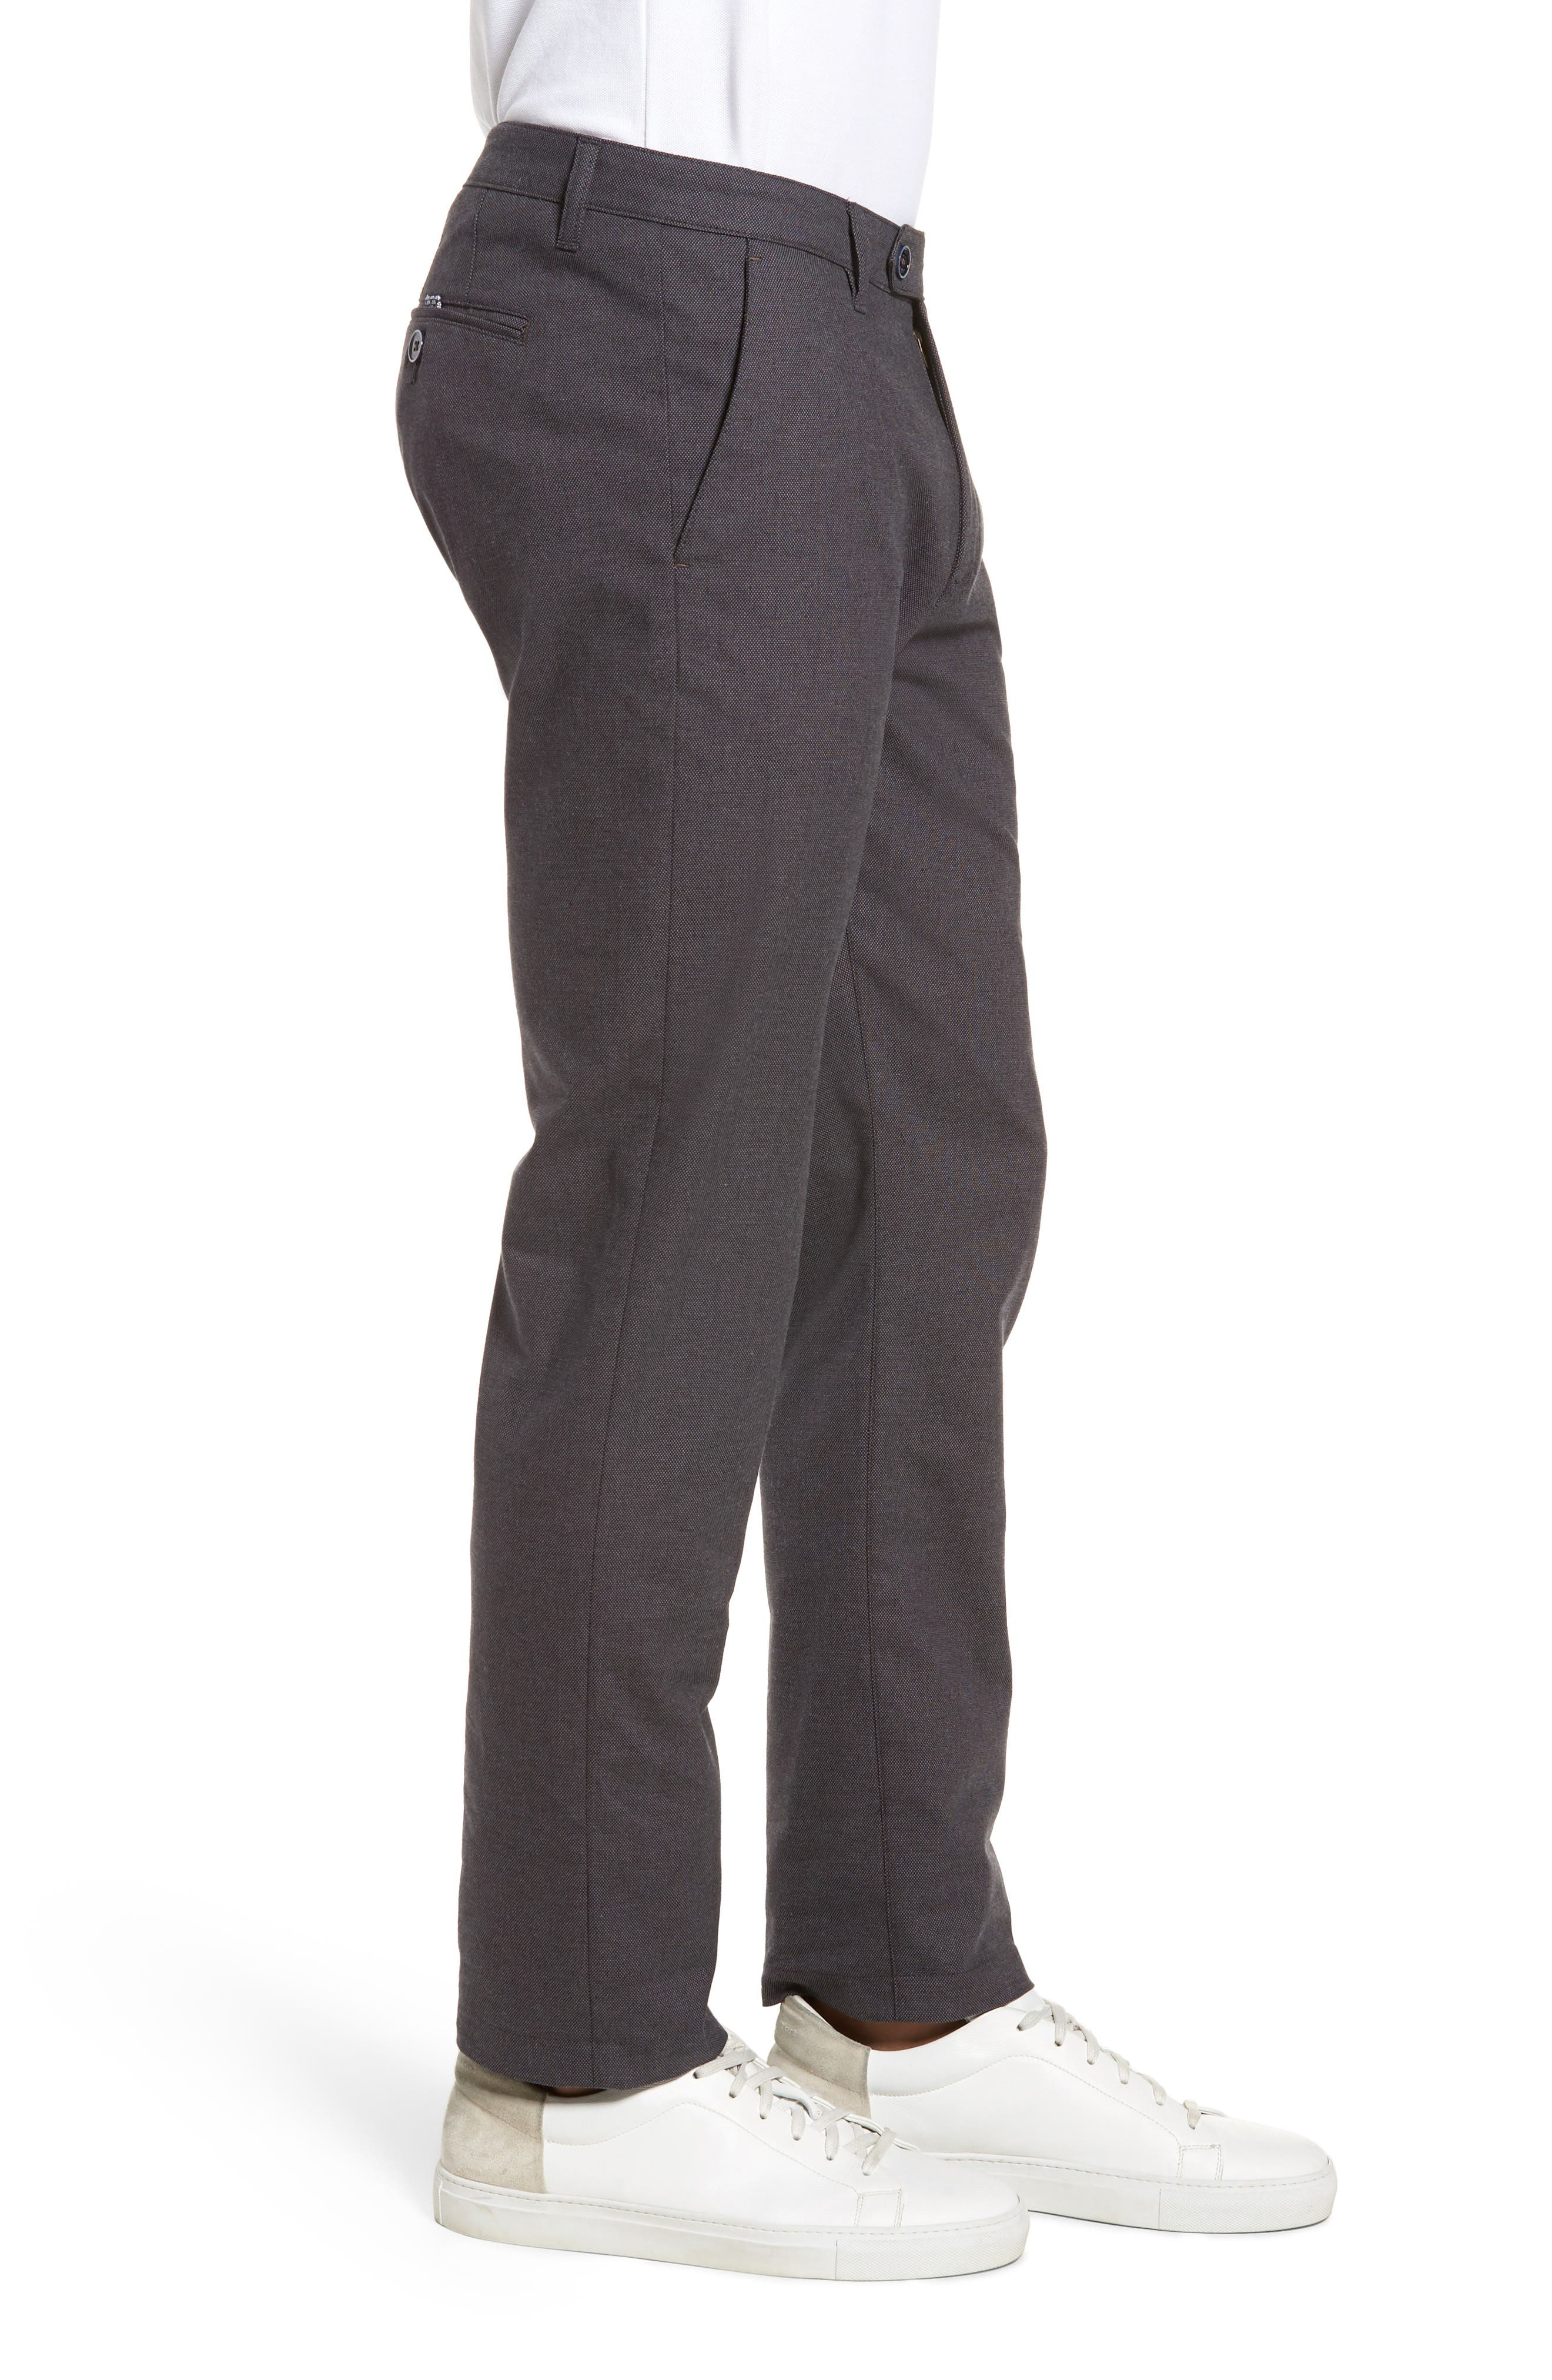 Holldet Flat Front Stretch Solid Cotton Pants,                             Alternate thumbnail 3, color,                             020